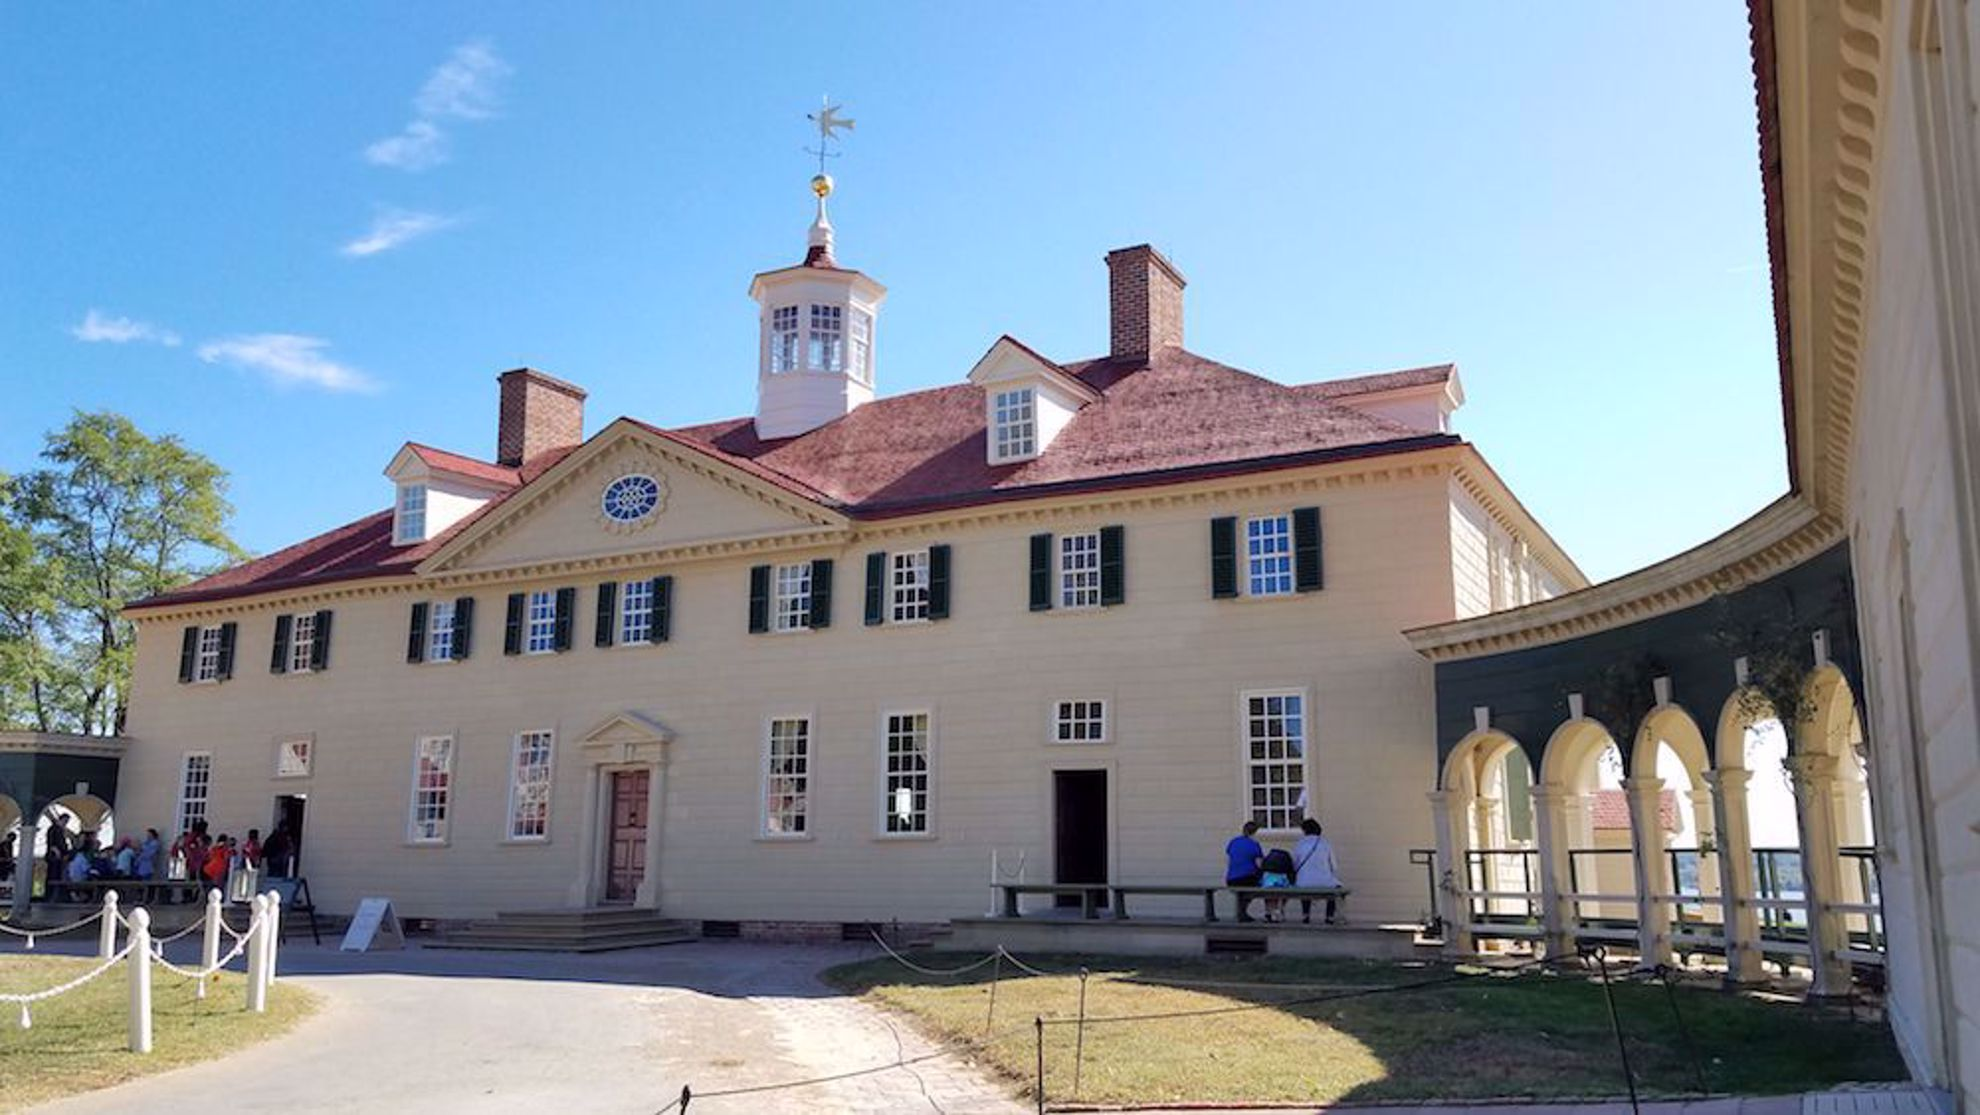 George Washington's home at Mount Vernon